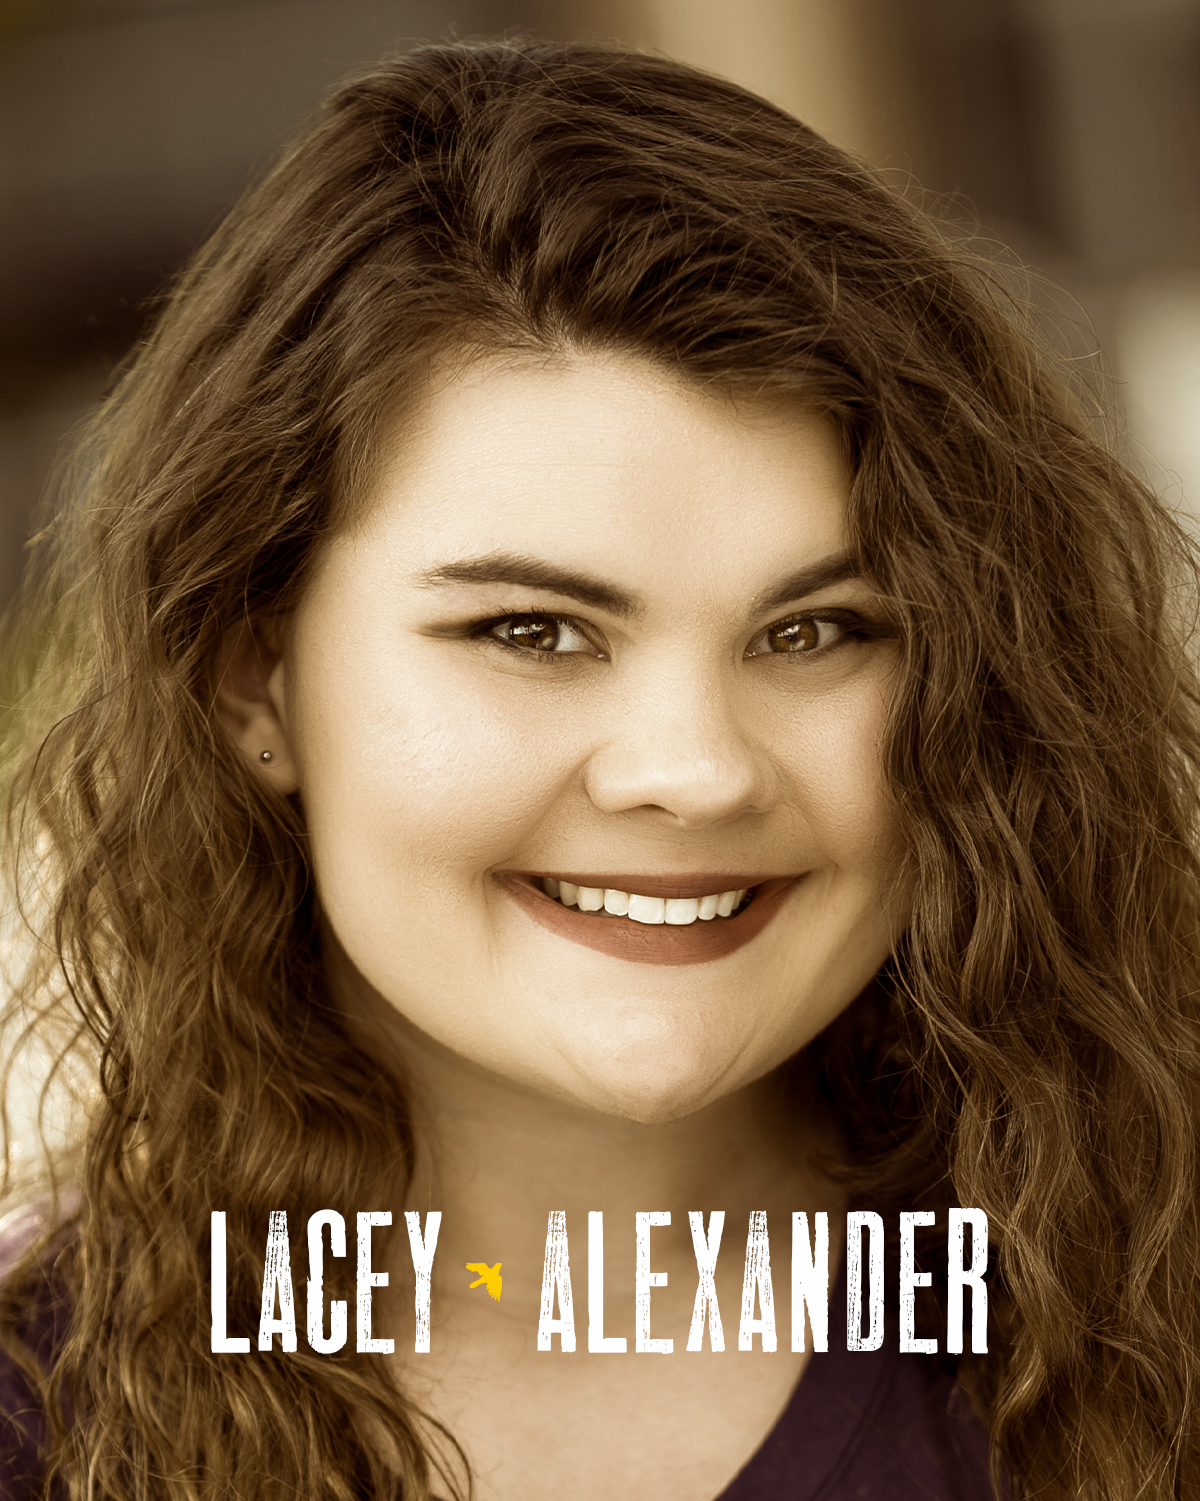 LACEY ALEXANDER  (Ensemble) is a Birmingham-based actress and playwright, and currently holds a BS in Theatre from Troy University. She most recently performed with the Birmingham Children's Theatre as Smee in  Peter Pan . Her plays have been produced by the Nylon Fusion Theatre Company in New York City, and readings of her work were presented by the Queens Theatre in New York and on the Millennium Stage at the Kennedy Center for the Arts.